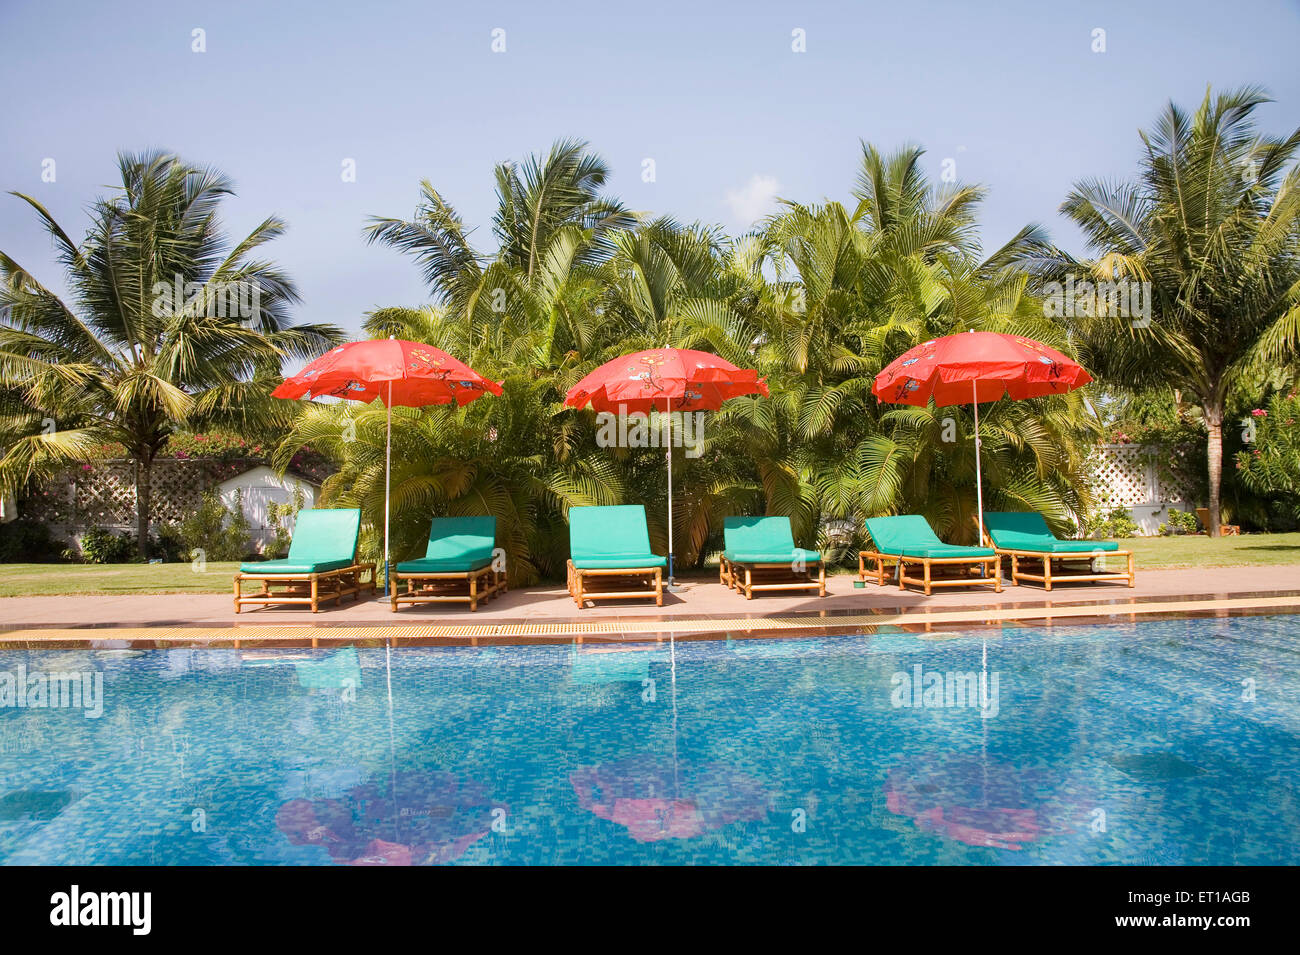 Three Red Color Beach Umbrella Near The Swimming Pool Blue Water Stock Photo Royalty Free Image